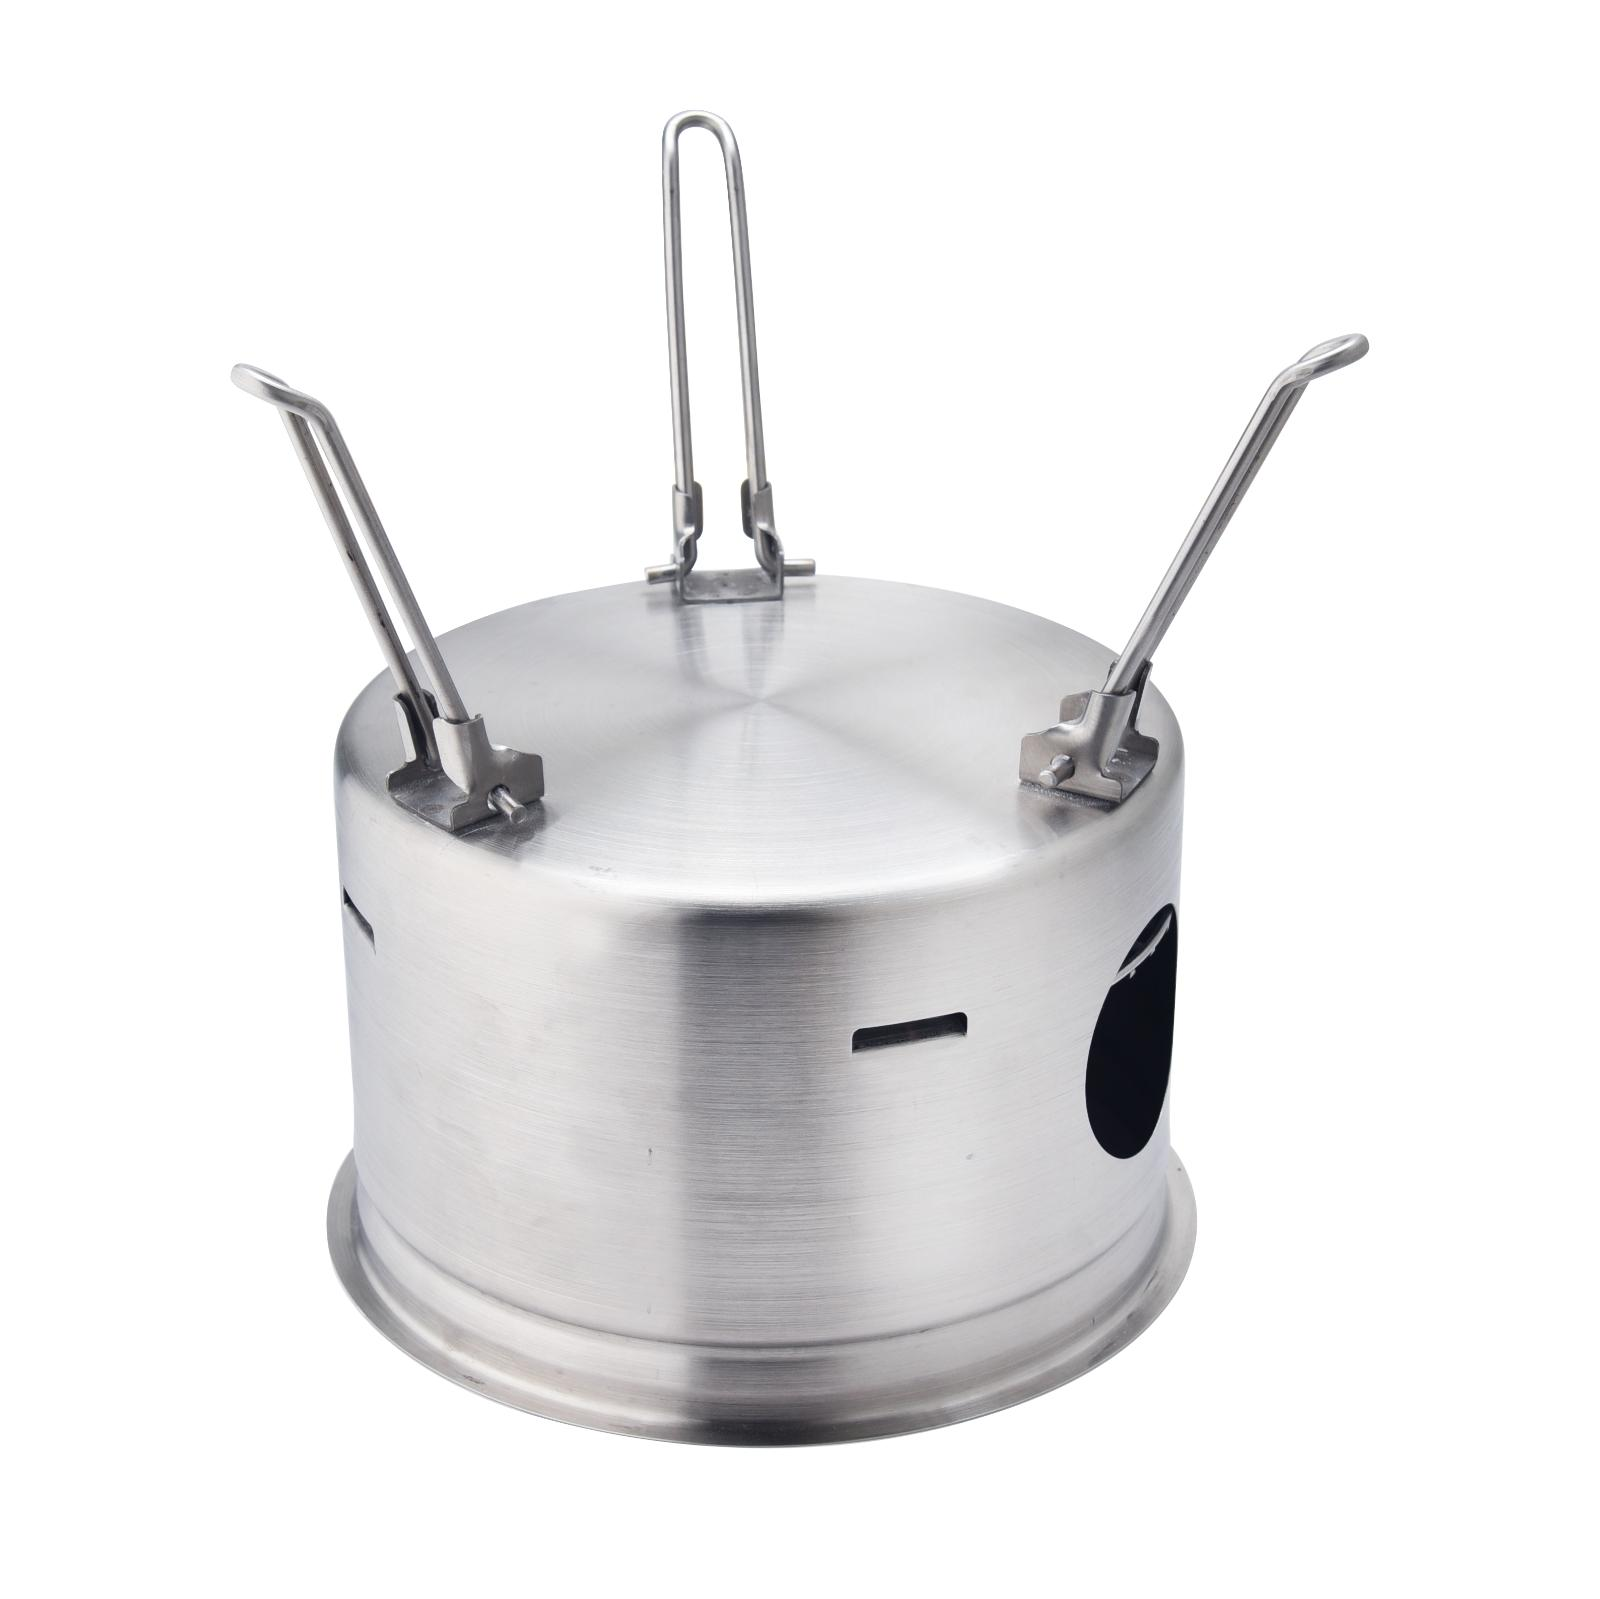 Outdoor Stainless Steel Camping Wood Portable Stove